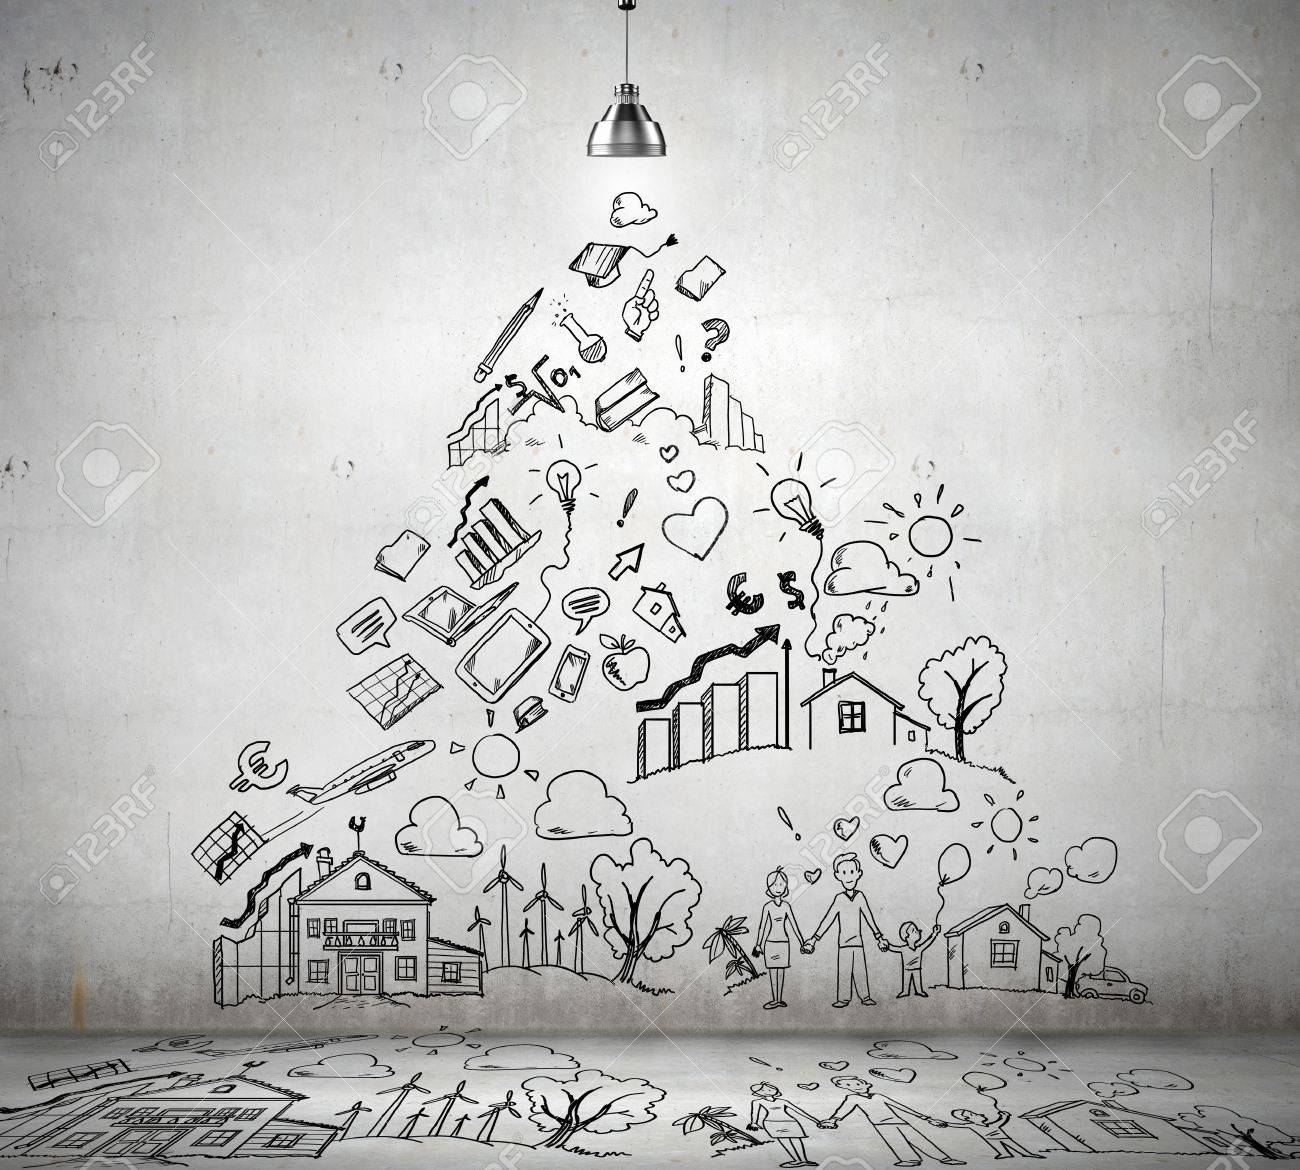 sketch drawing with ideas on wall collage stock photo picture and royalty free image image 21325014 sketch drawing with ideas on wall collage